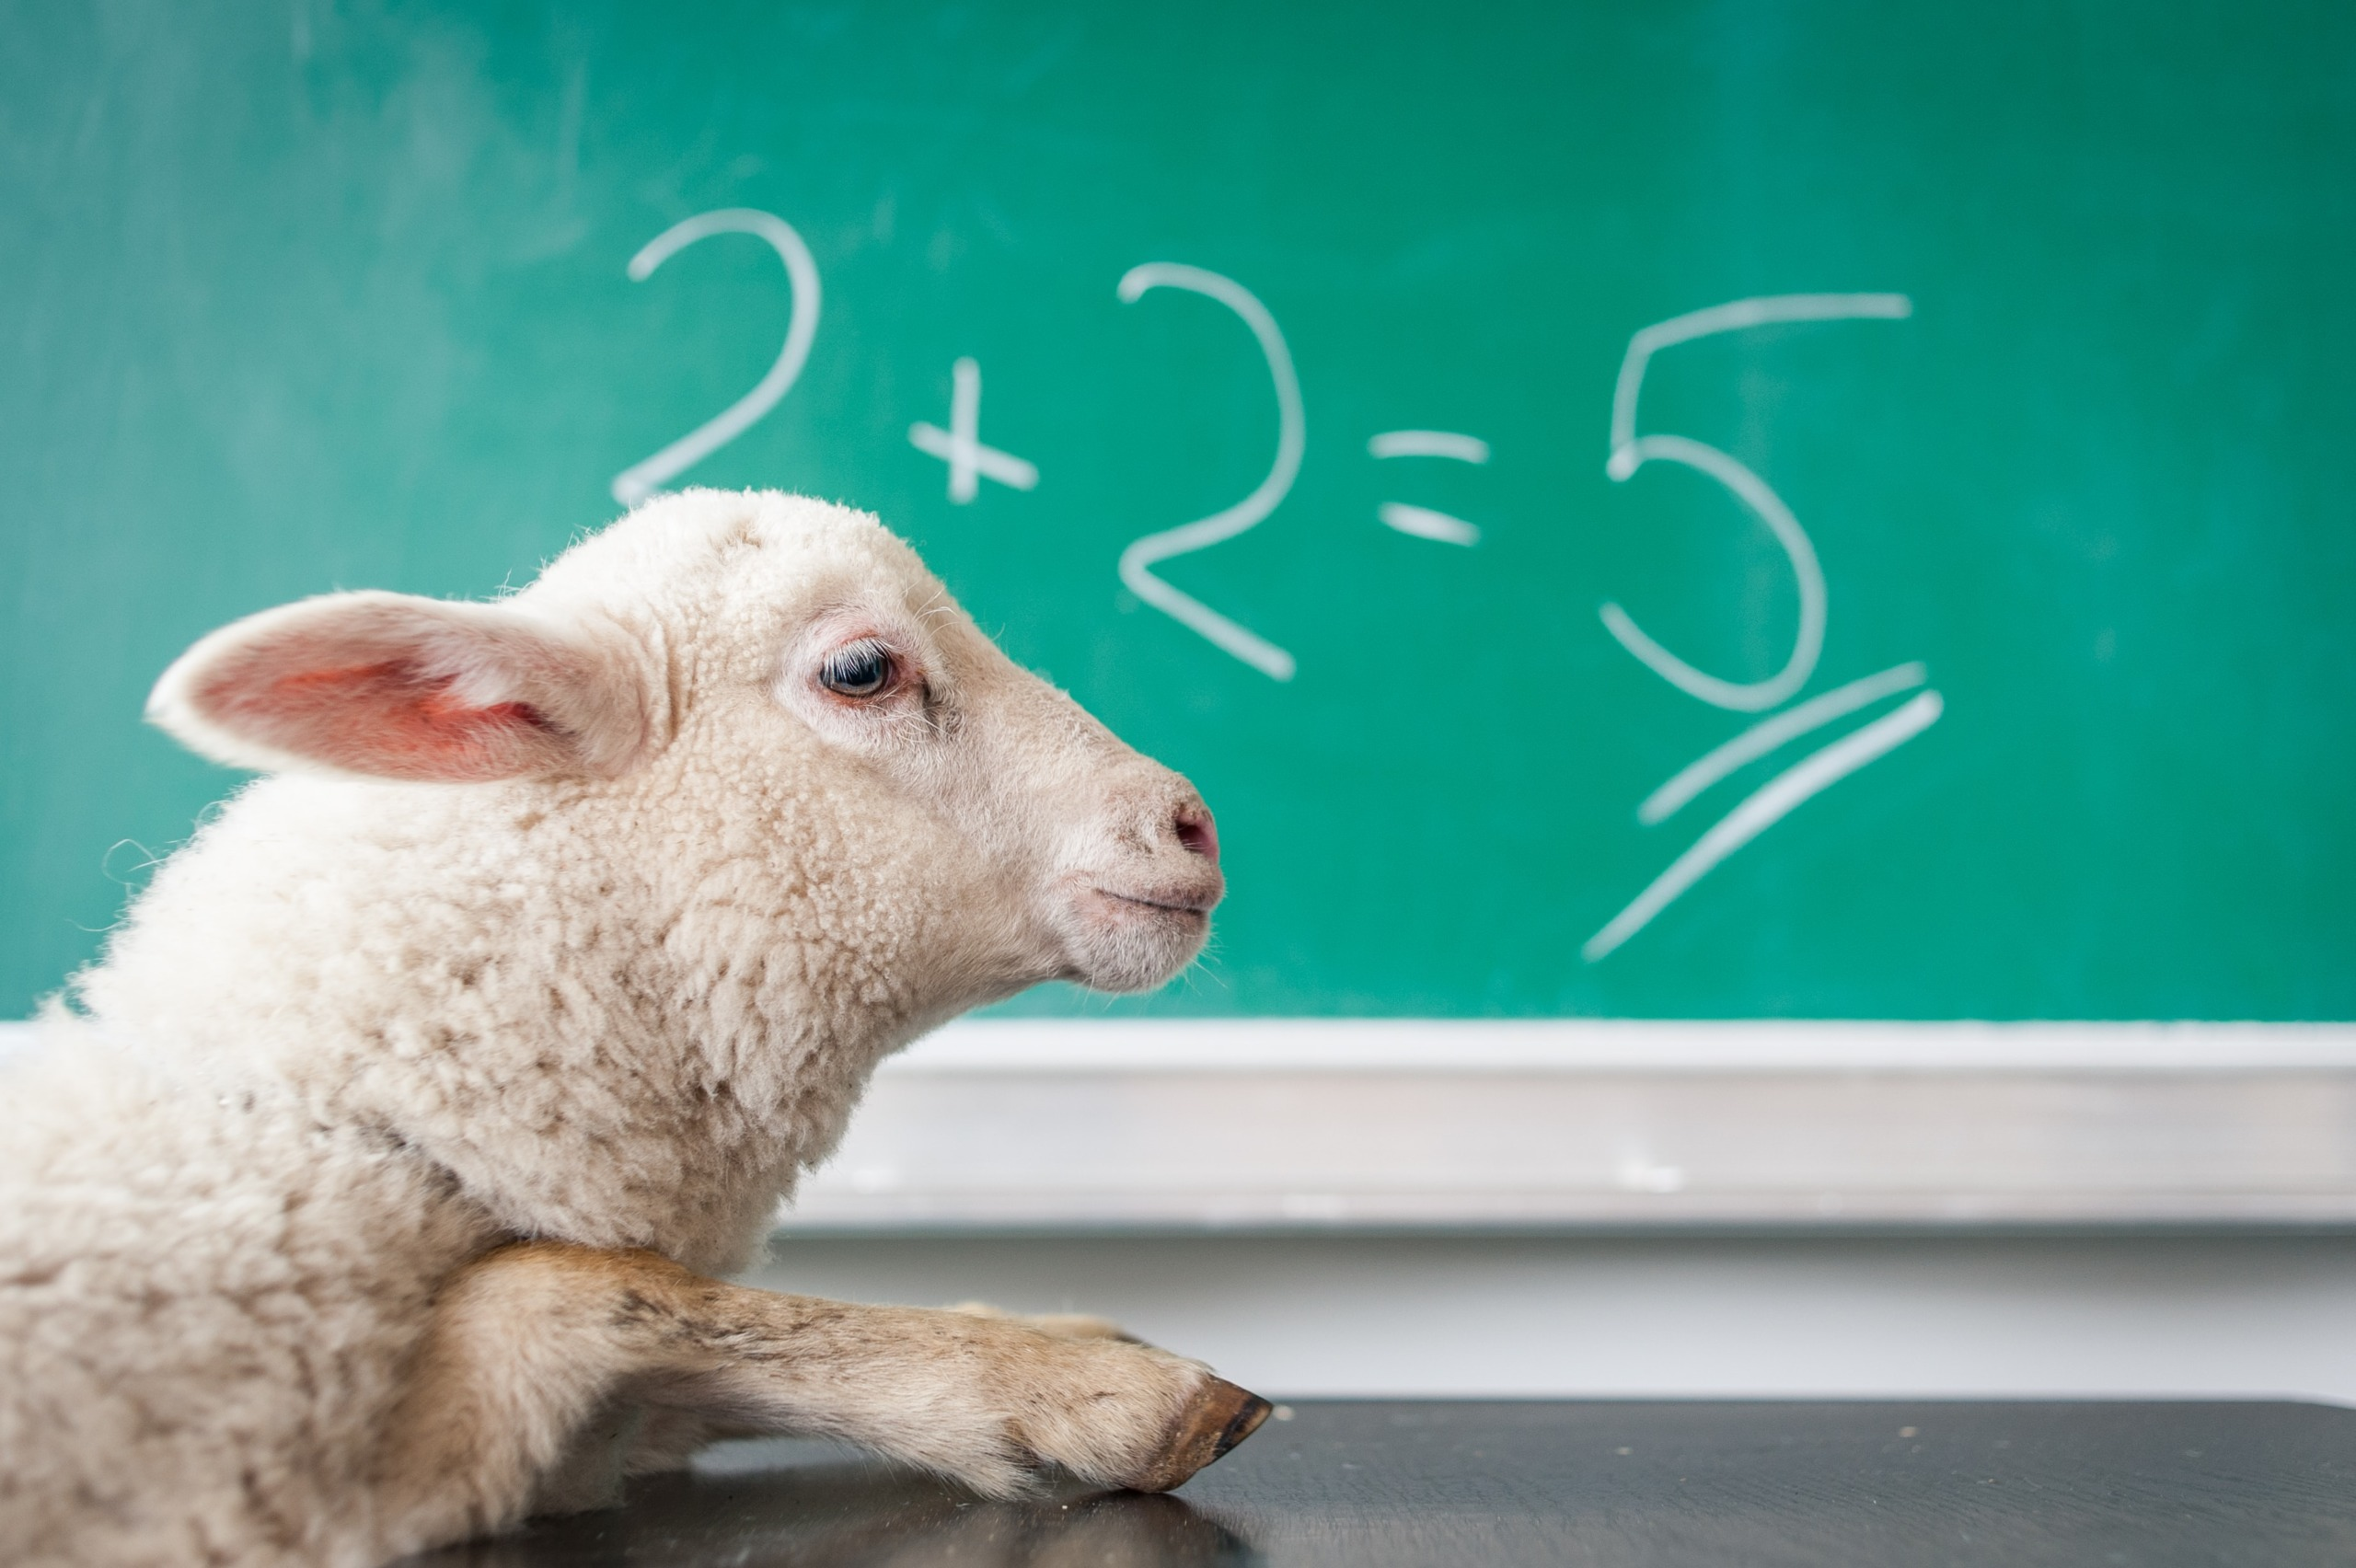 Dumb Lamb in front of chalkboard funny for mail privacy protection